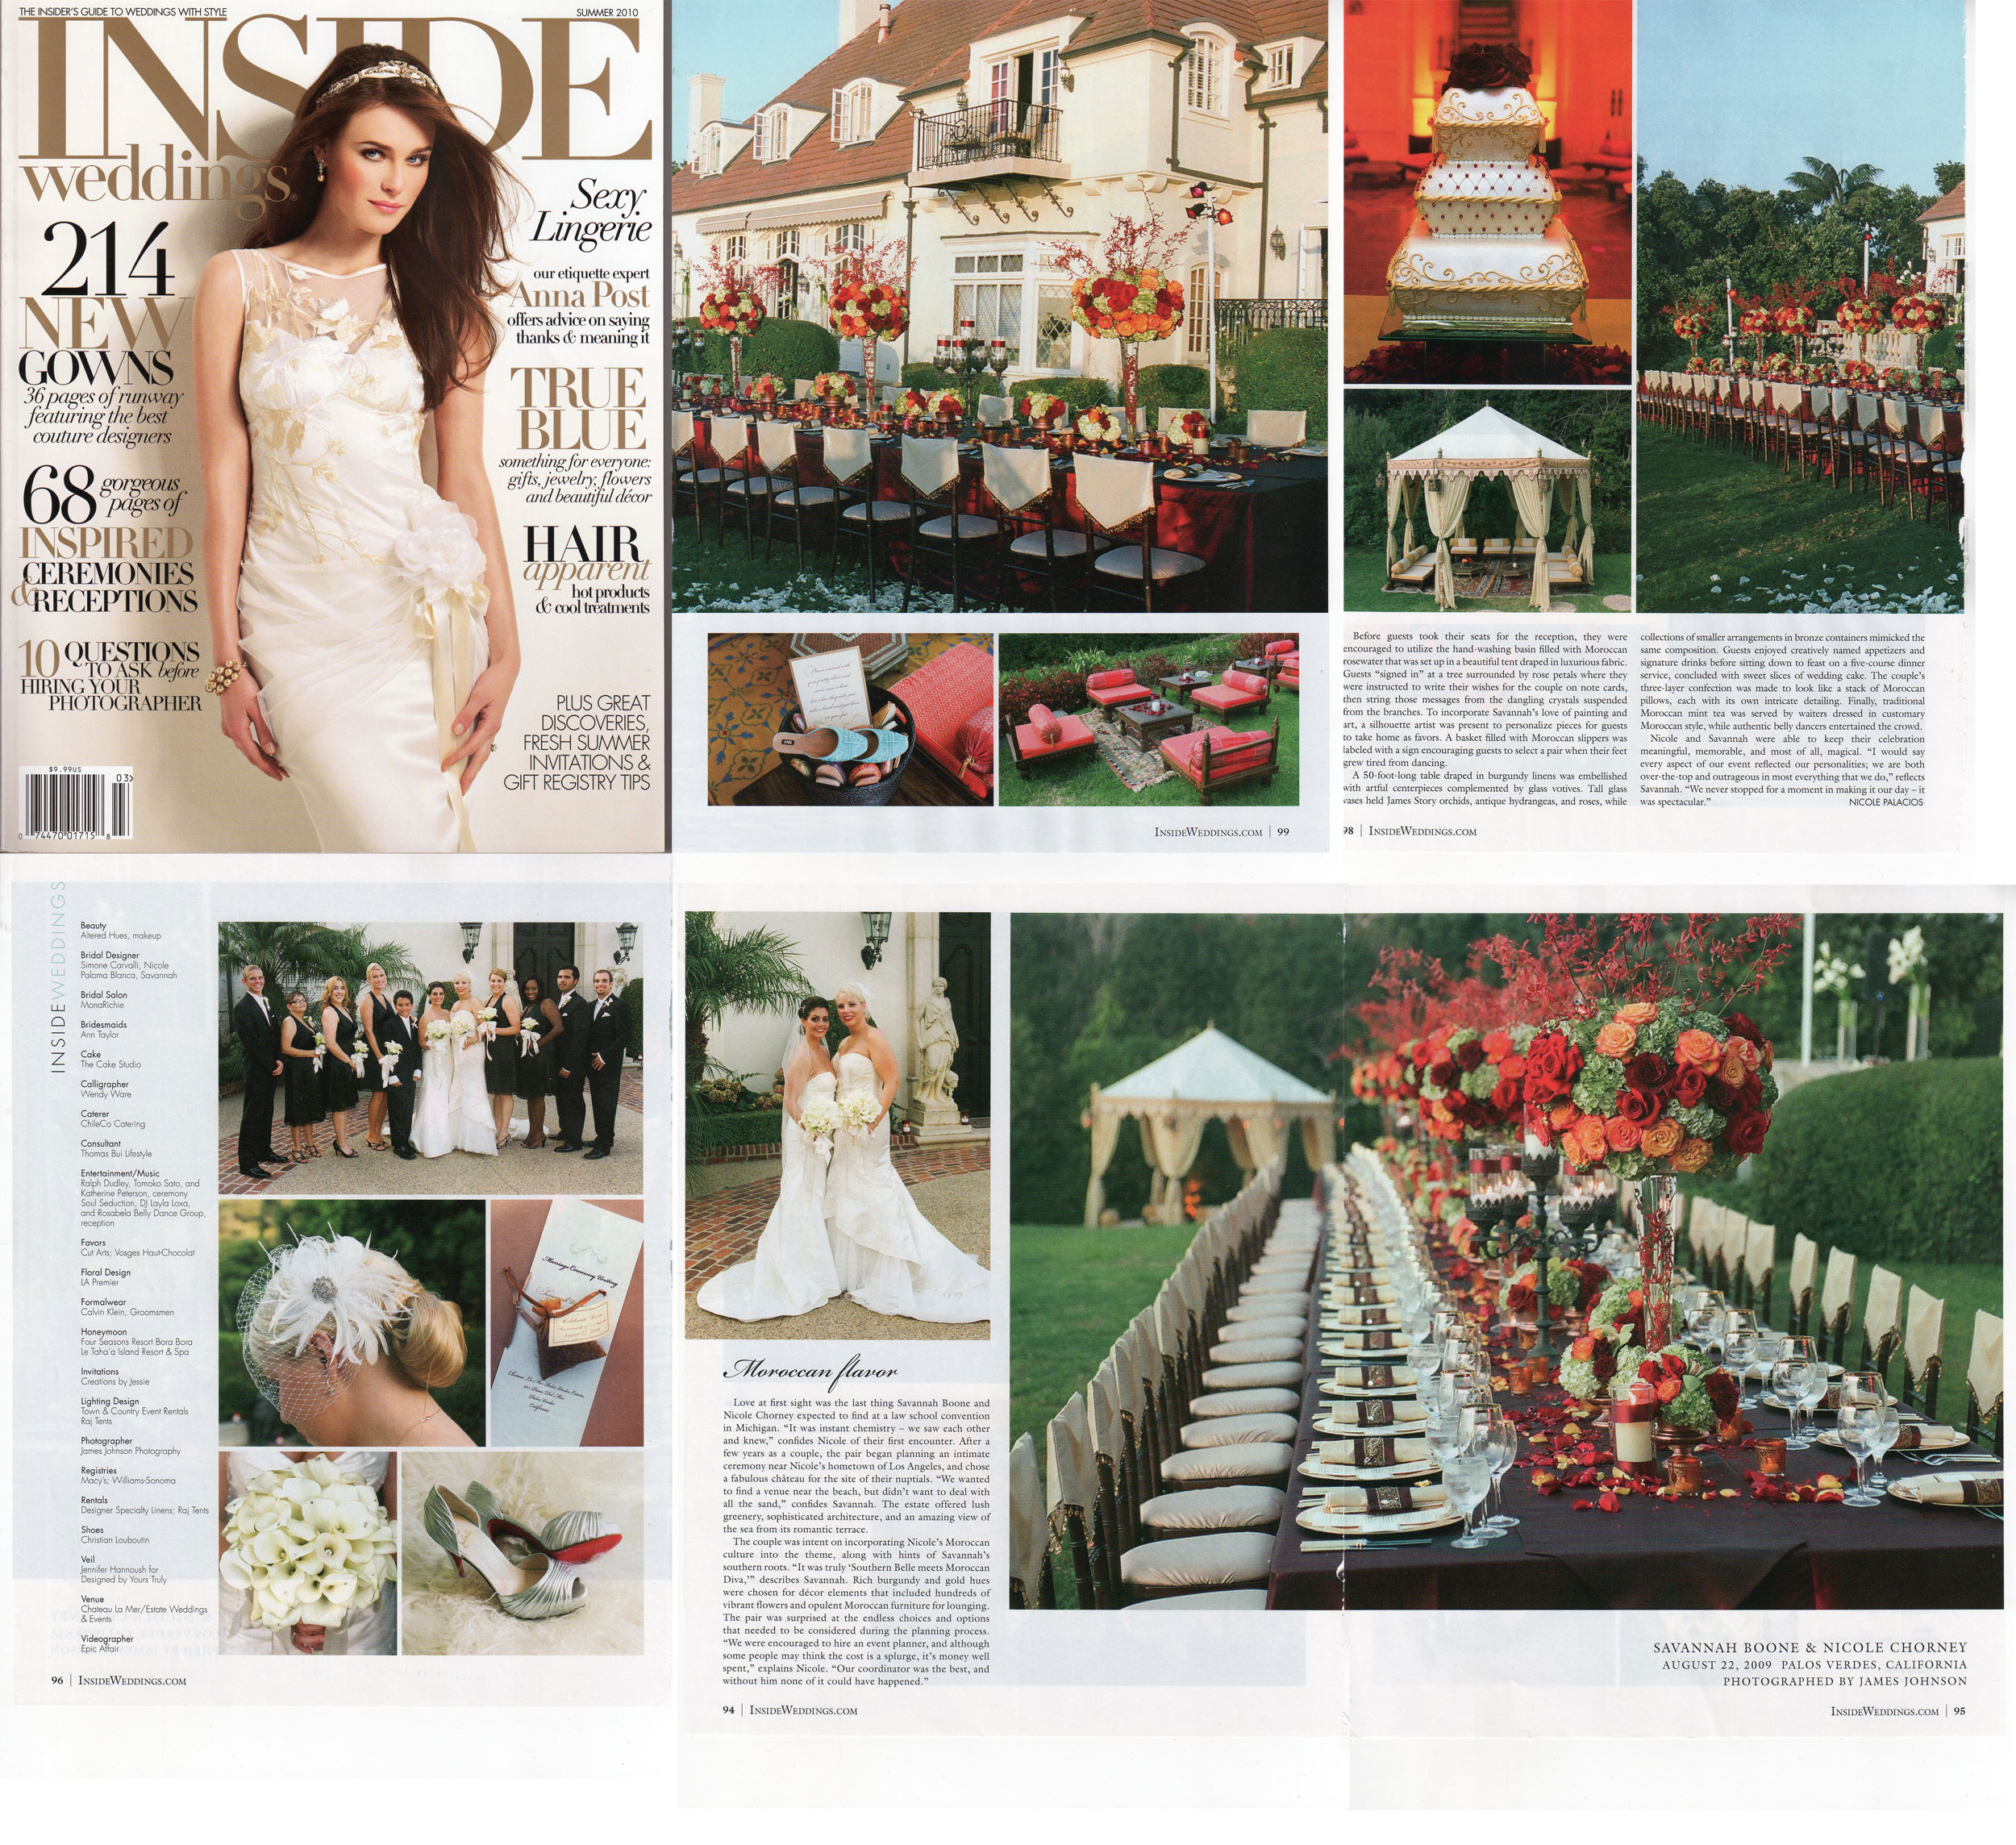 raj-tents-inside-weddings-magazine-2010.jpg